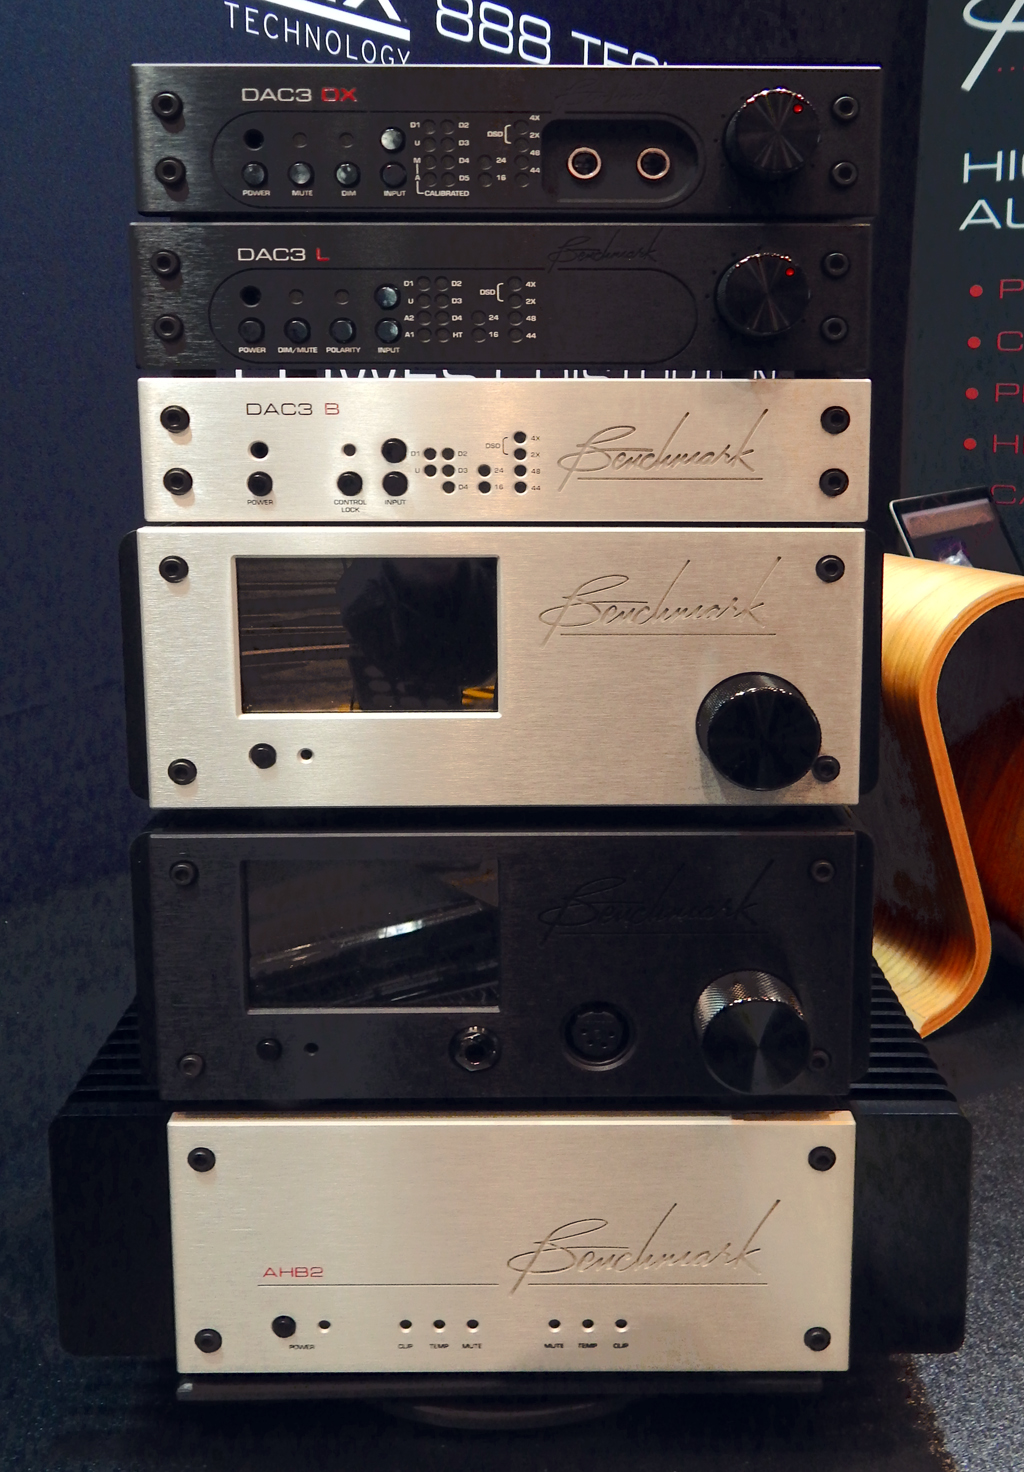 Benchmark DAC3 DX  DAC, Benchmark DAC3 L DAC, Benchmark DAC3 B Reference Quality DAC, Benchmark LA4 Line Amplifier, Benchmark HPA4 Headphone/Line Amplifier, Benchmark AHB2 Power Amplifier